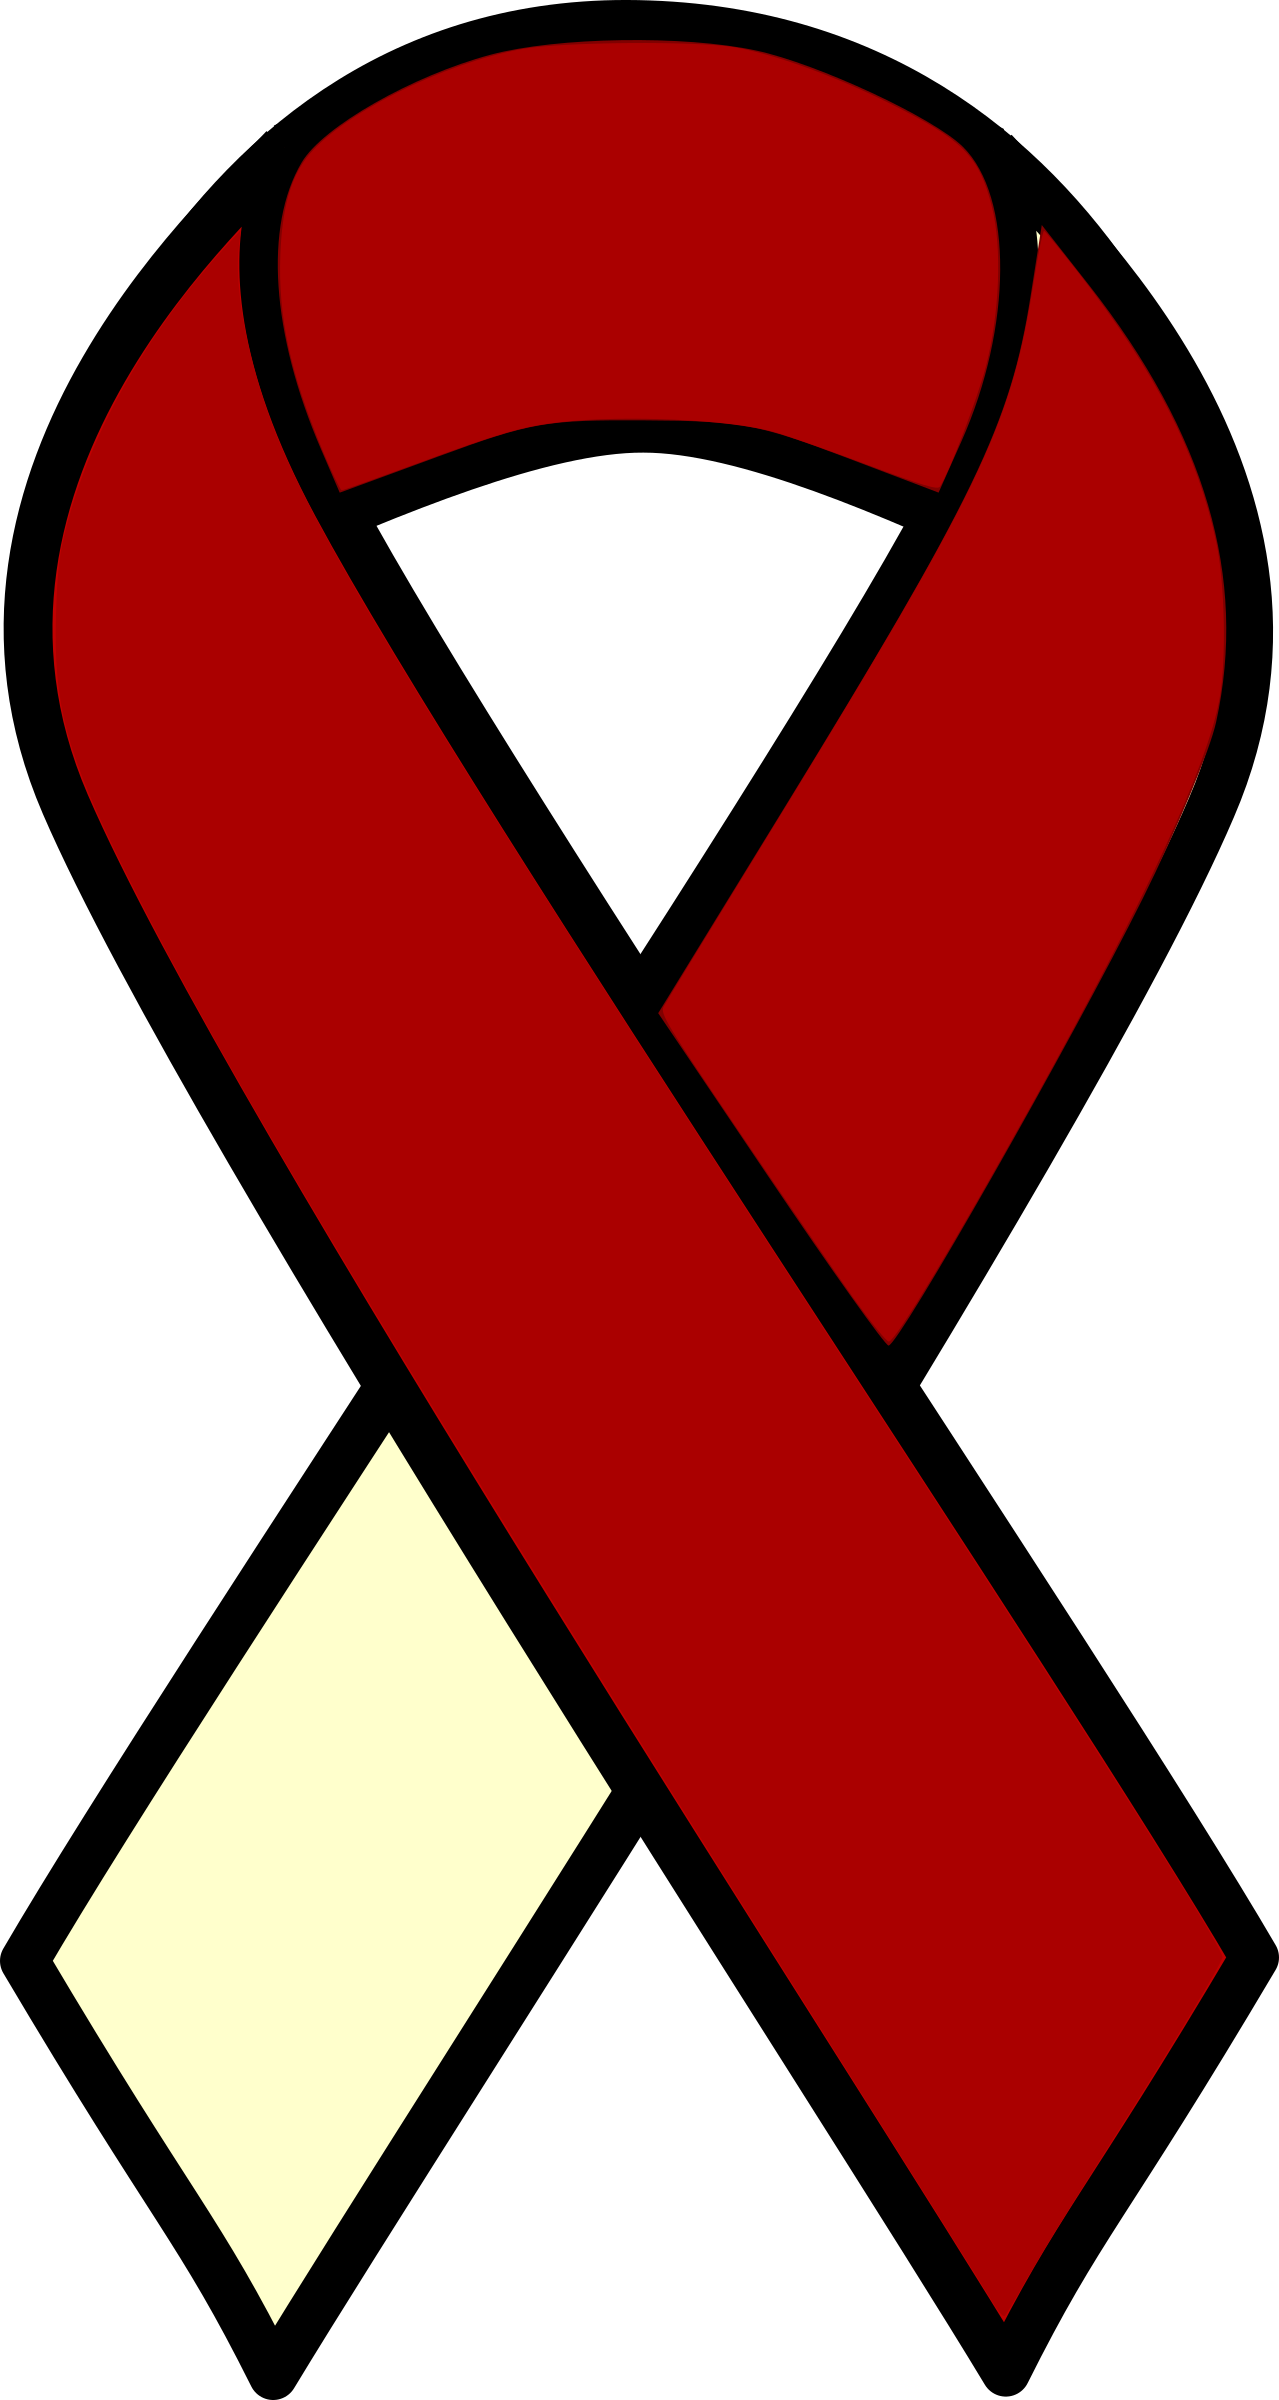 Head and Neck Cancer Ribbon by barnheartowl